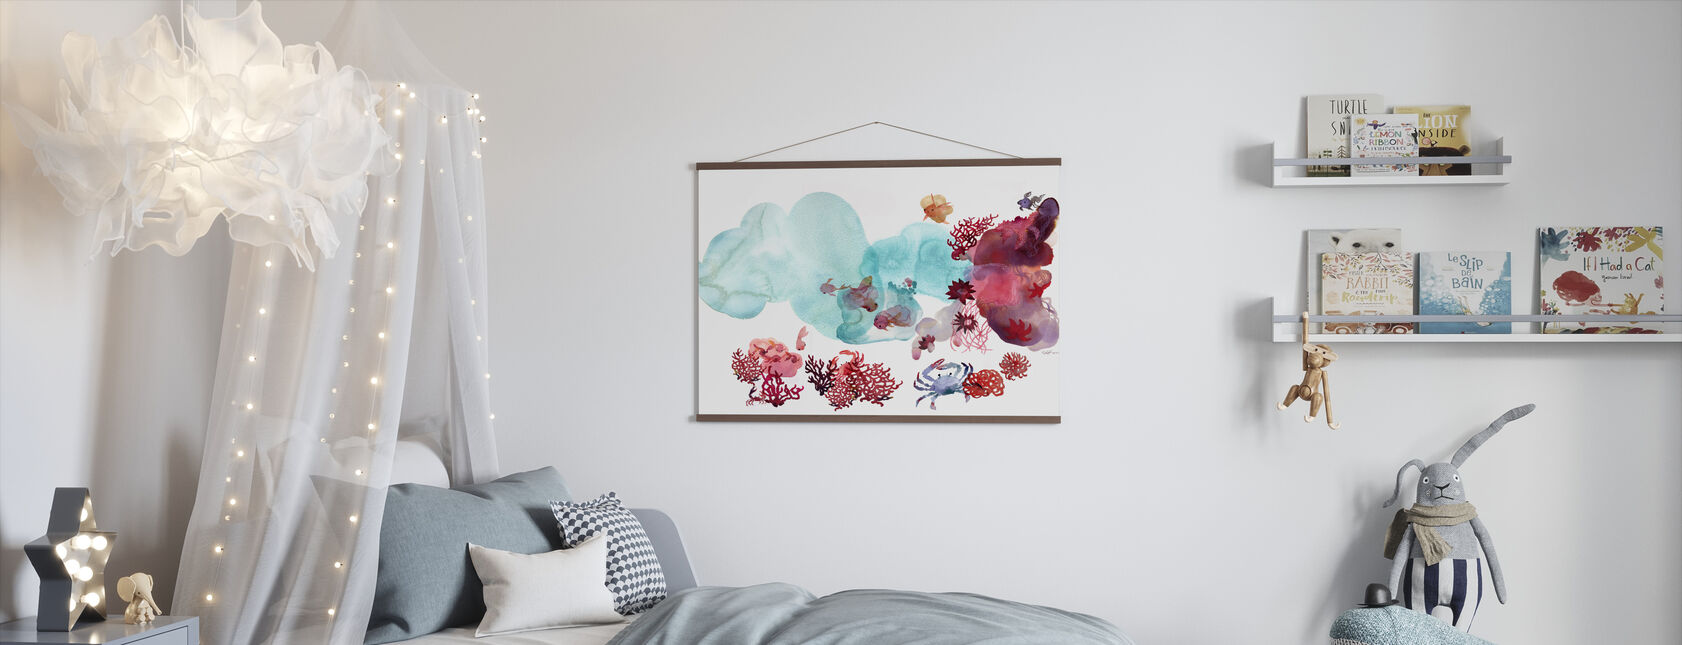 Water Color Coral III - Poster - Kids Room